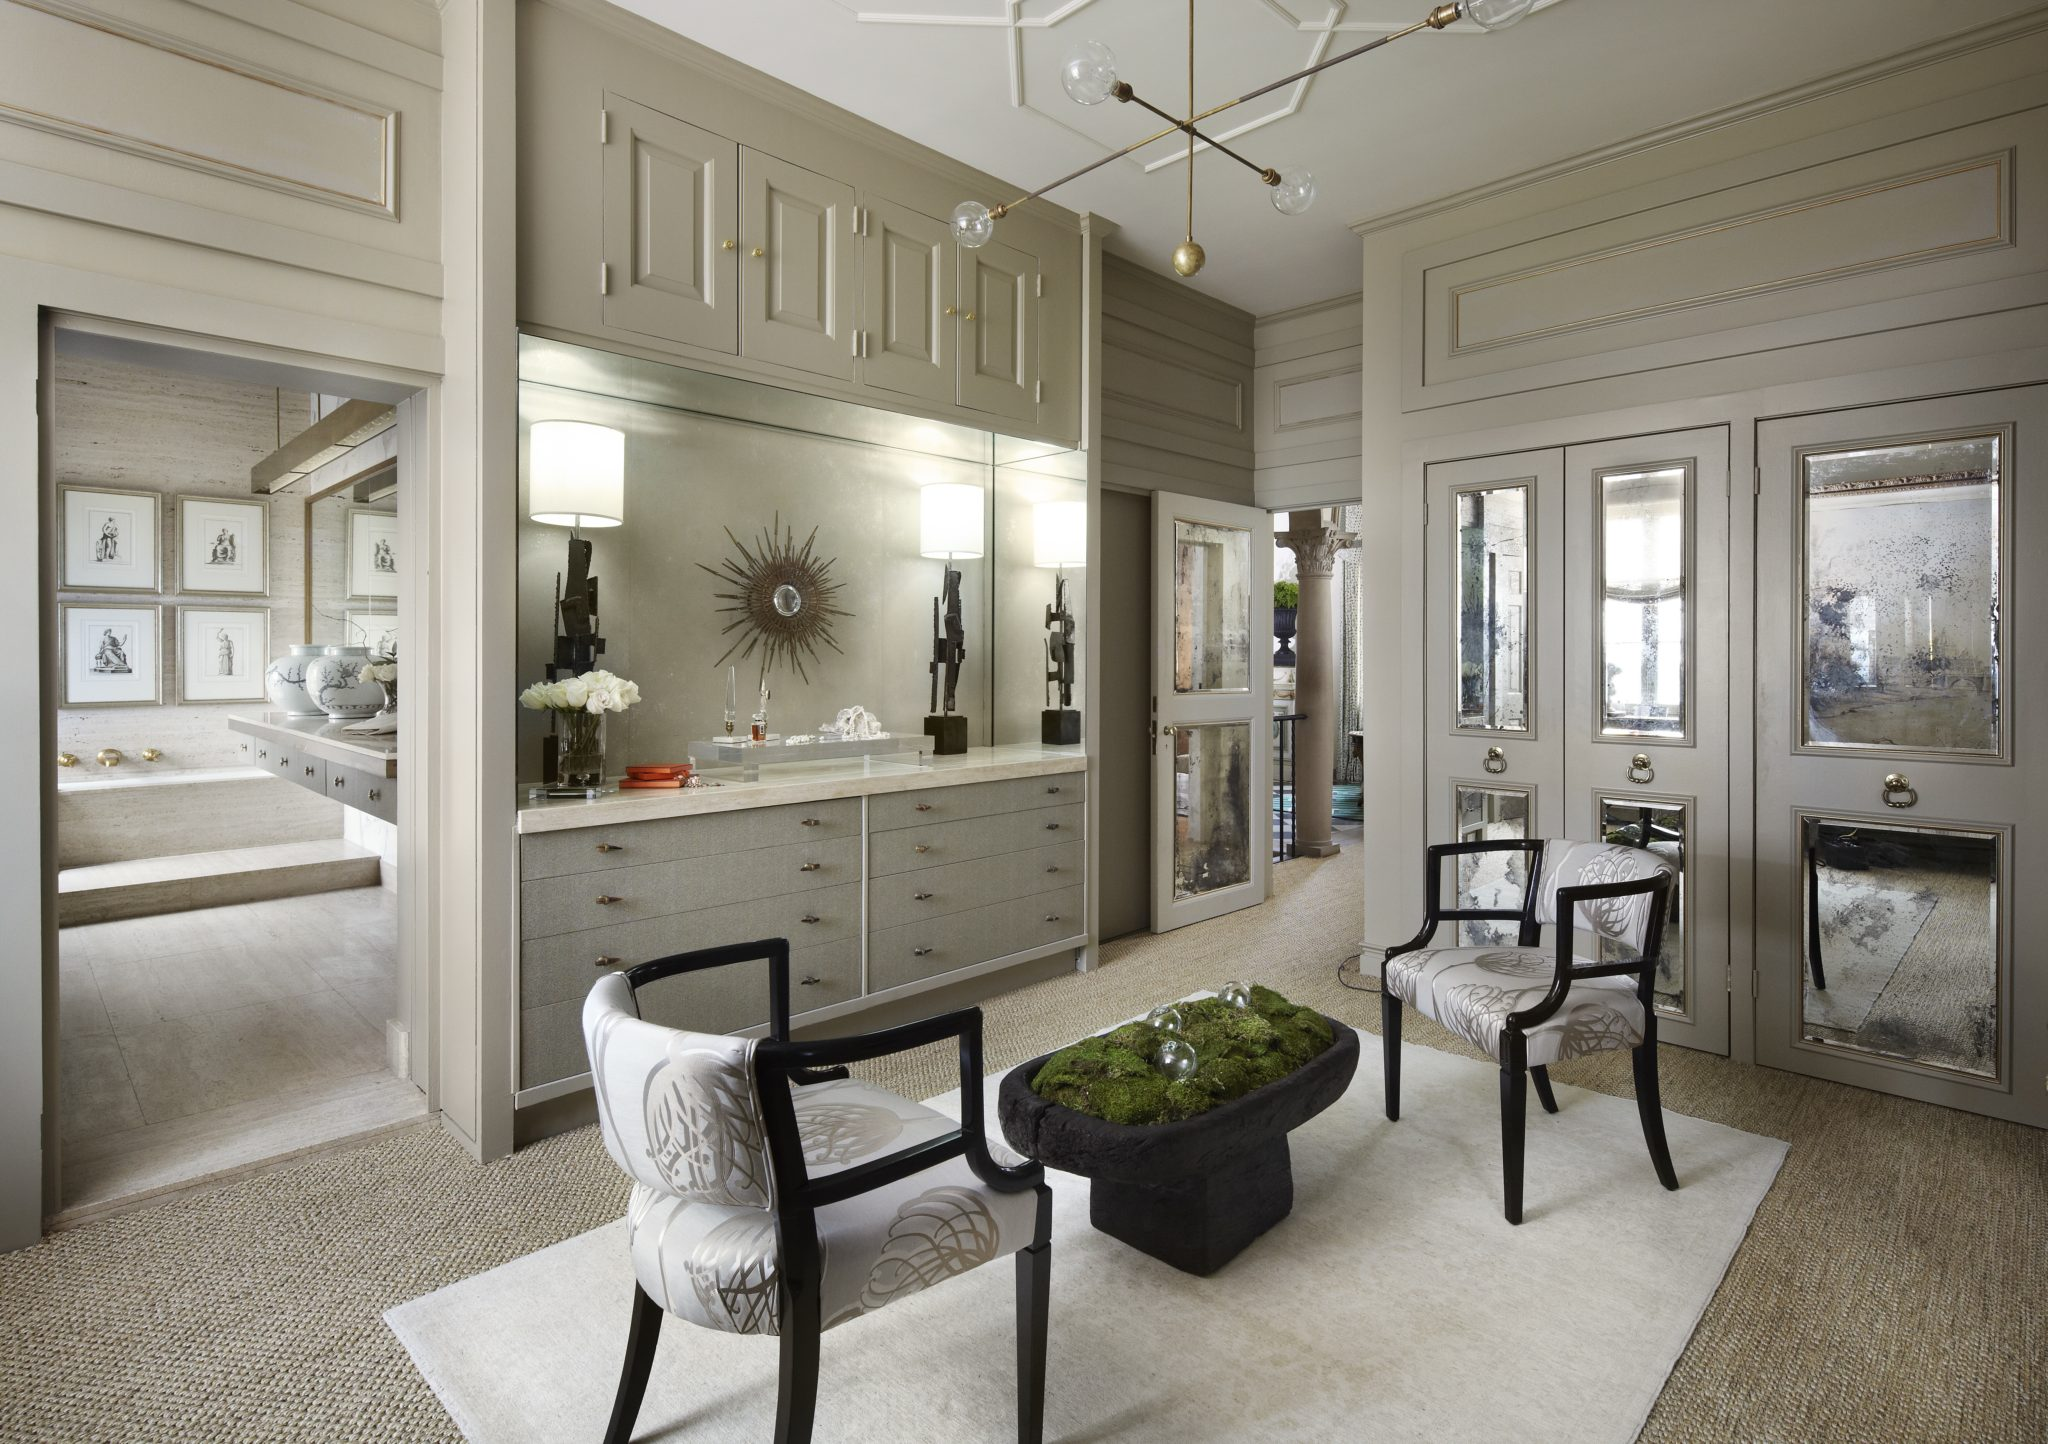 """""""A room that is incomplete lacks the layering process. There is a misconception with homeowners — they think that filling a room with furniture completes the room,and that is the farthest from the truth in my opinion."""" —Randy Heller Inc. / Pure & Simple Interior Design,Highland Park, IL  Favorite Finishing Touches: """"The last pieces that I add to a room would be art and accessories.In this room, and all rooms that I design, when considering the finishing touches, I always strive to come up with ideas that will create an unexpected pleasure upon entering the room for the first time.I always consider or think about bringing in visual as well as tactile textures.In this room the finishing textures would be the rough yet warm sisal wall-to-wall rug, the dark, moody, vintagebrutalist lamps made from black-dipped steel, the polished yet aged blackened mirrors, the applied moldings I added to the ceiling to create formality, and the freshly picked green moss for itsfragrance, color, and natural texturerepresenting the outdoors.""""  Design Advice:""""For homeowners looking to just freshen their space, I would suggest adding fresh flowers. It's hard to mess that up and does not require a professional designer!If a DIYwants to be a bit more daring, I would suggest wallpaper or paint."""""""